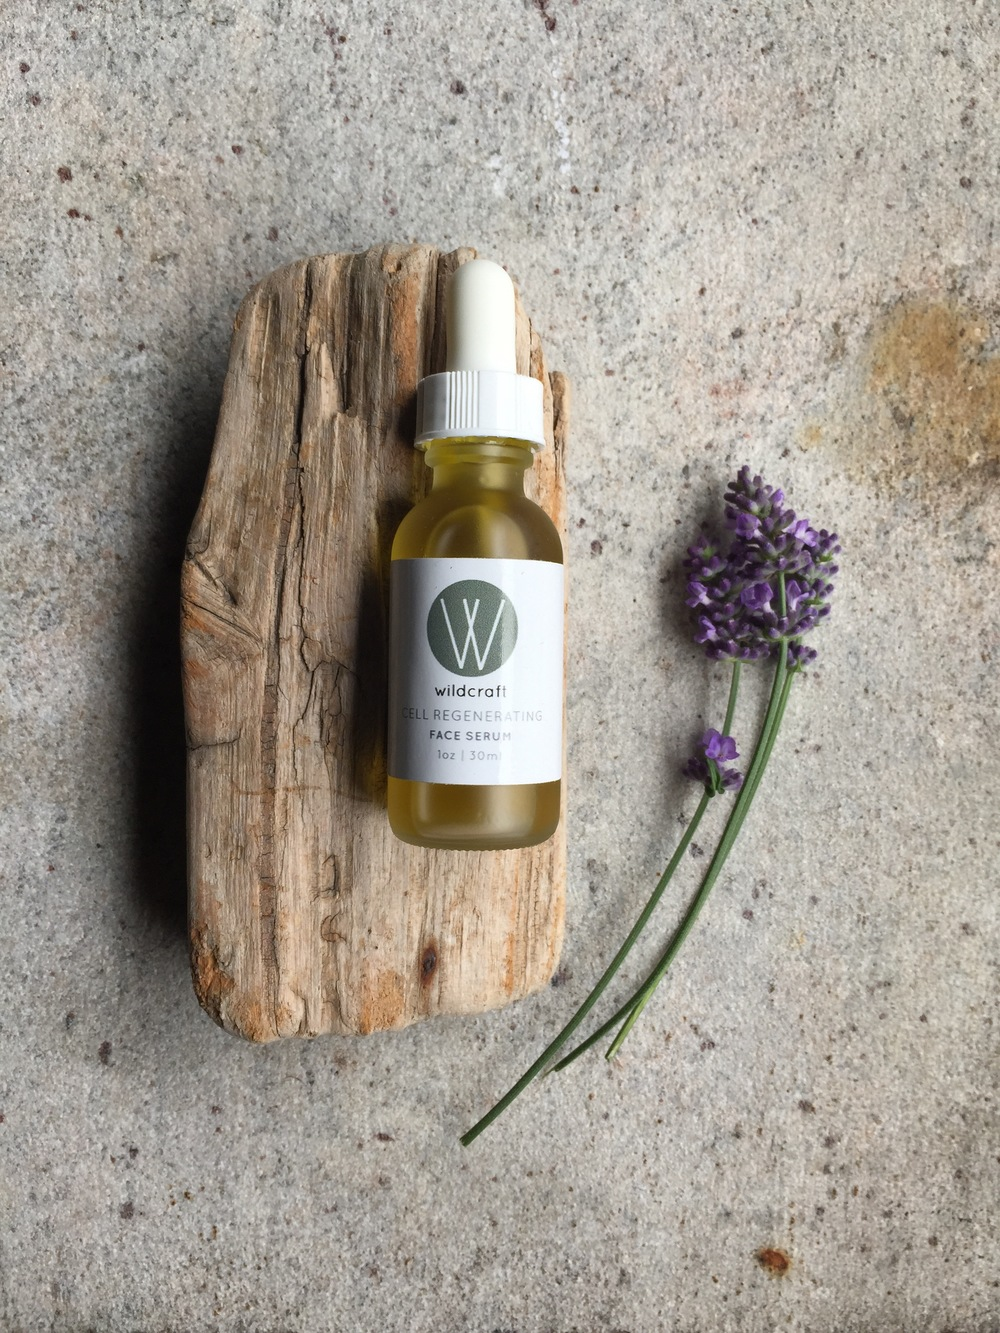 Wildcraft's Cell Regenerating Face Serum is housed in a frosted 1 oz./30 ml bottle with a white dropper. The serum retails for $28. Wildcraft sent me their Cell Regenerating Face Serum and Lemongrass Body Cream for review.